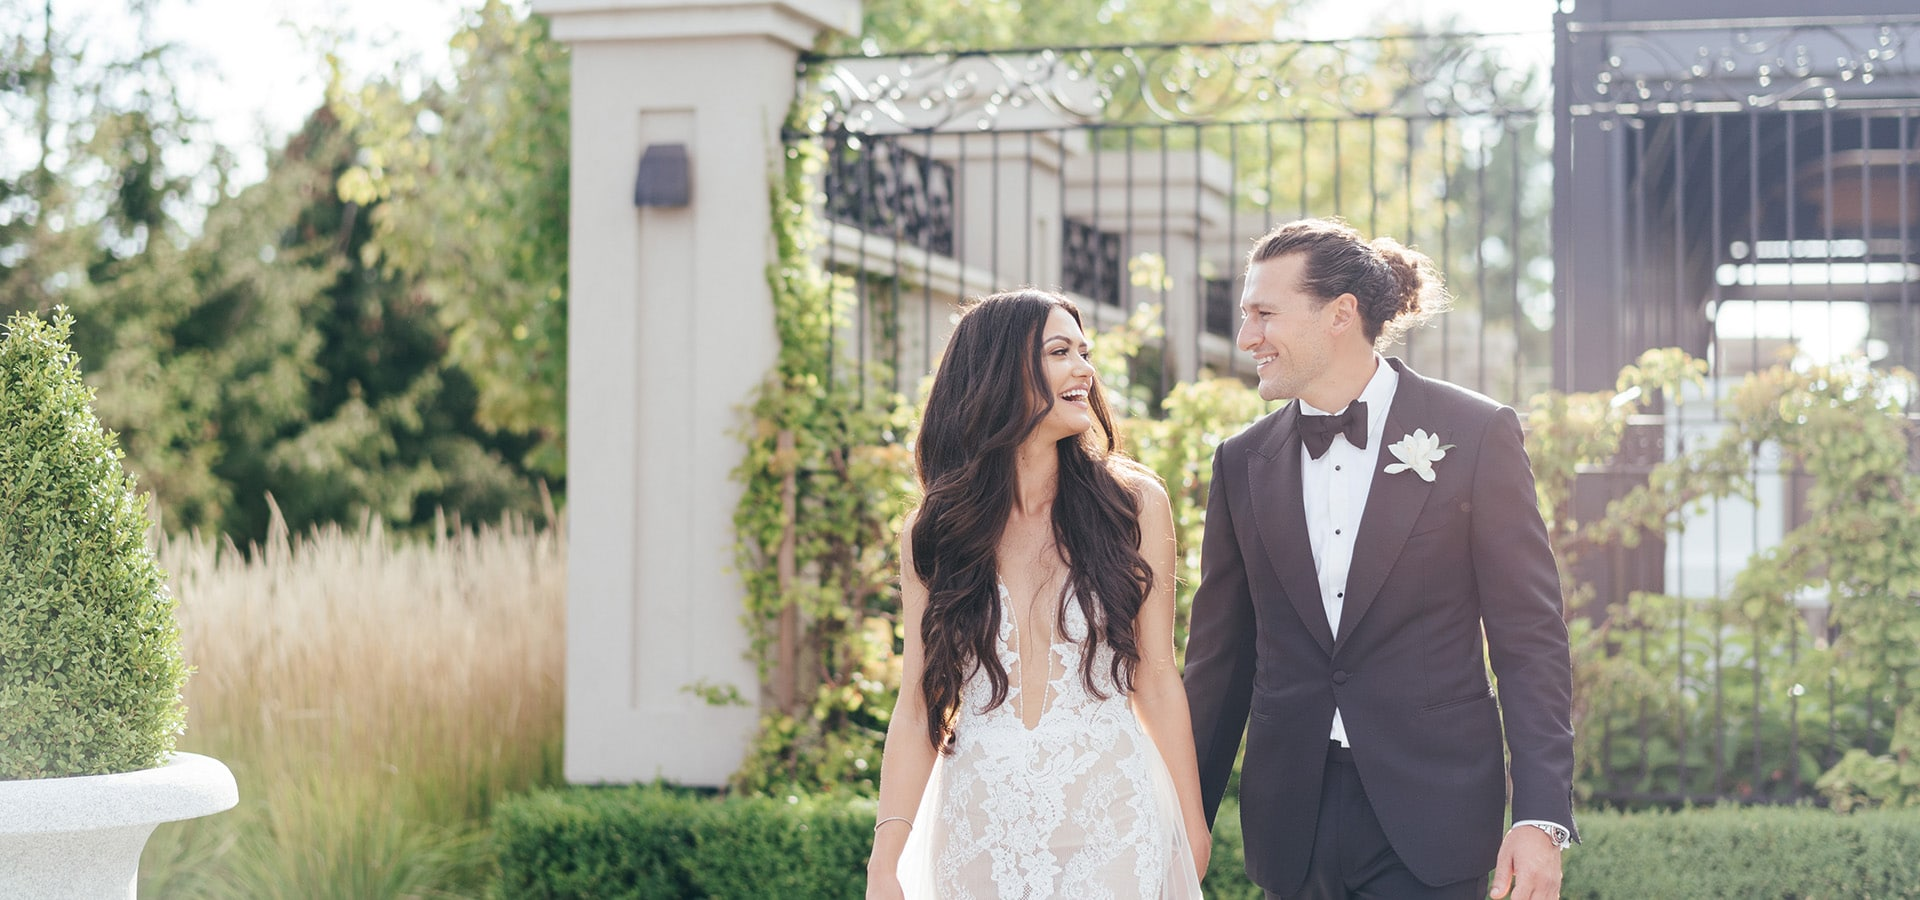 Hero image for Jessica and Anthony's Luxurious Wedding at Chateau Le Parc